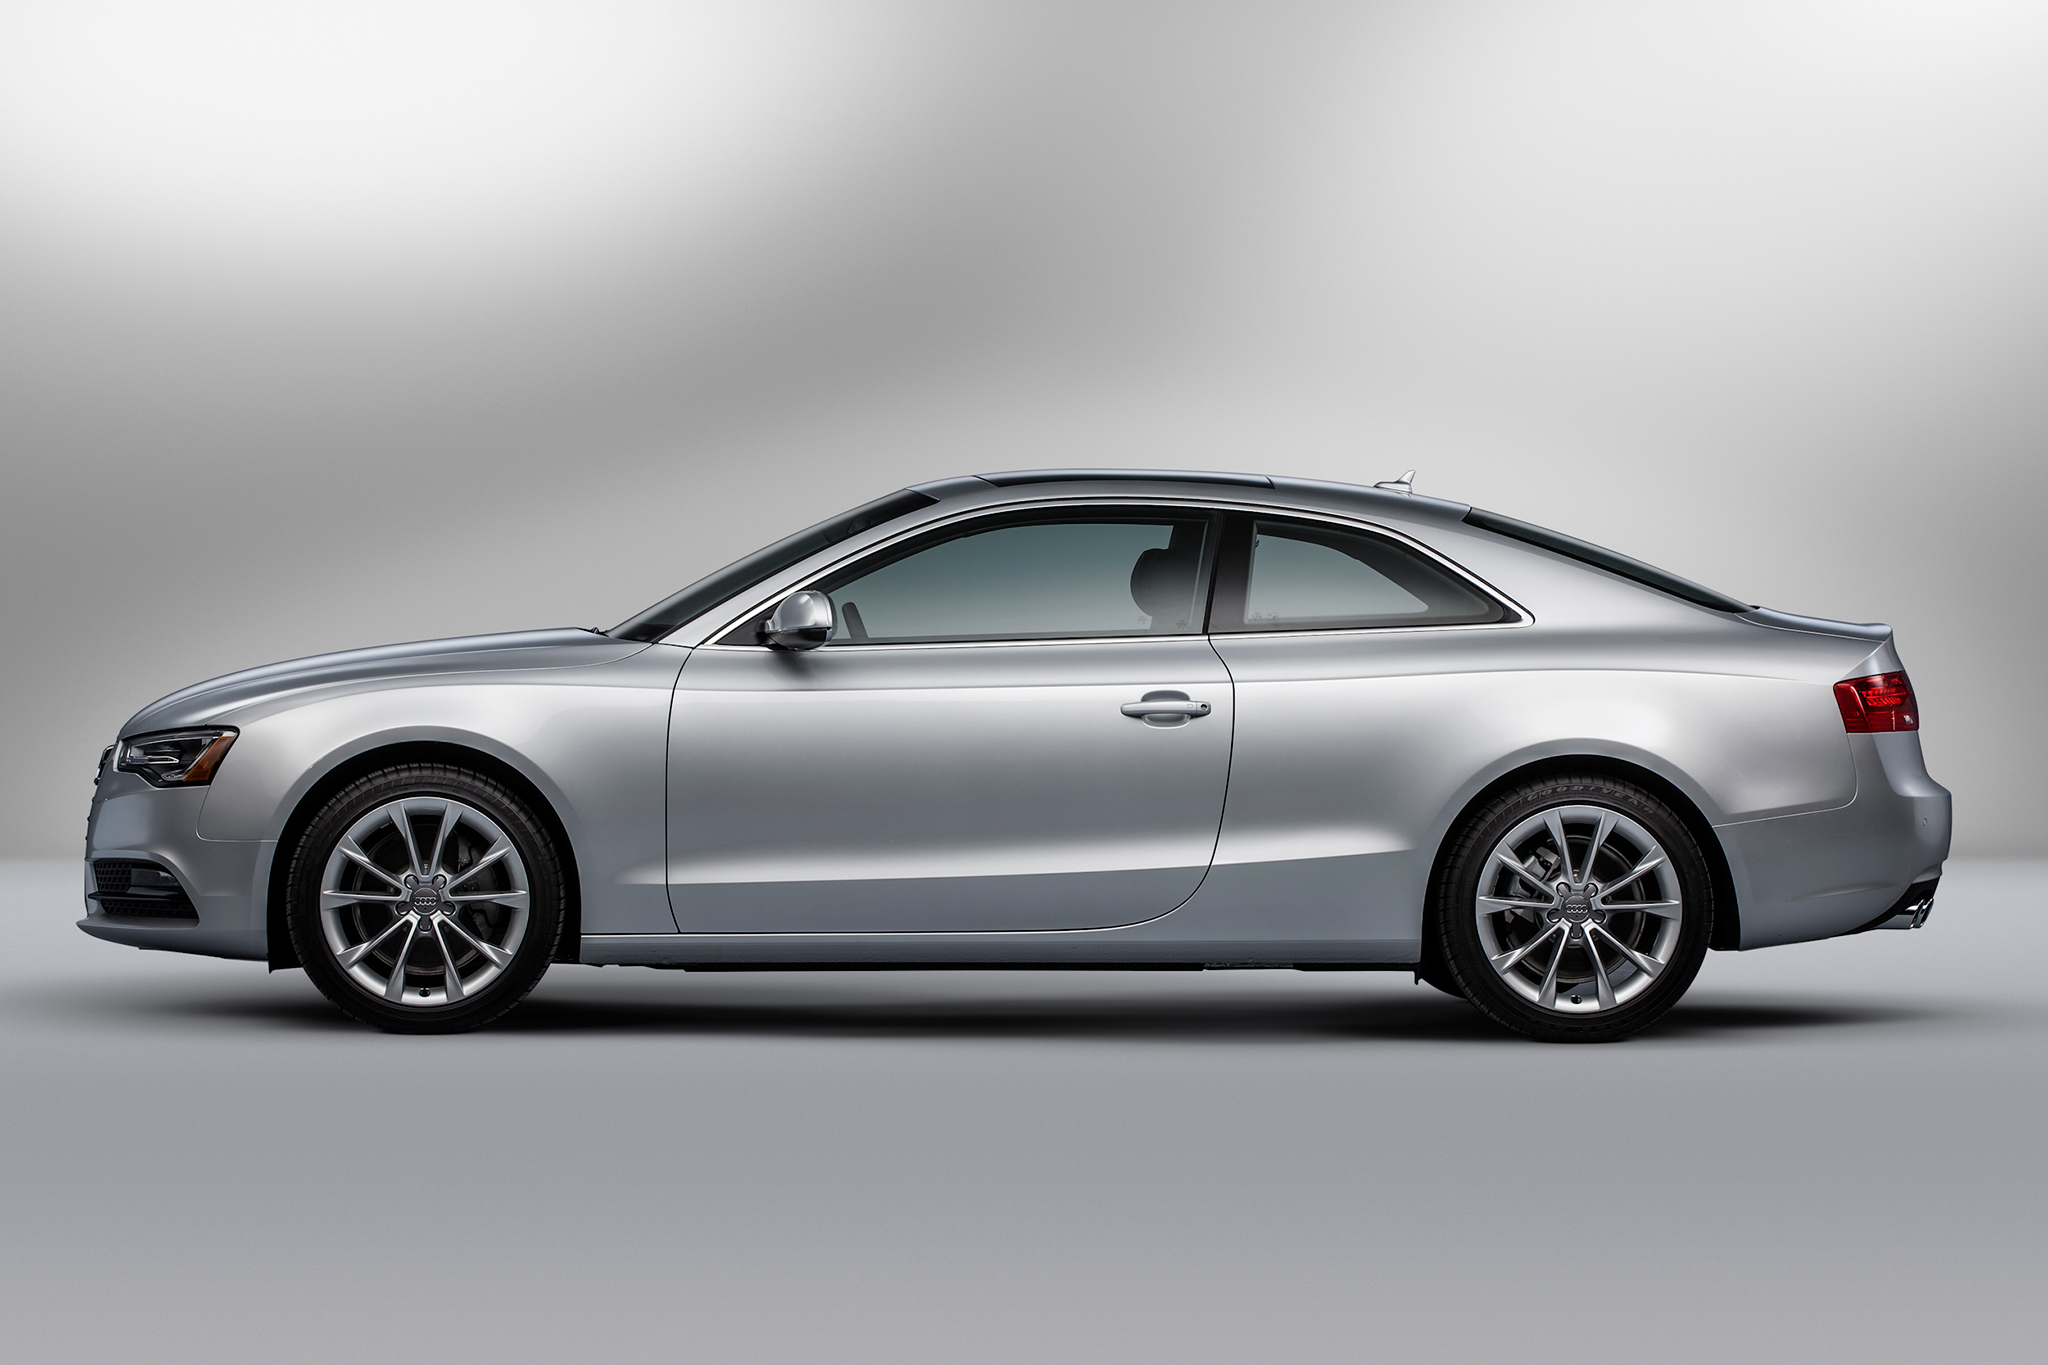 2014 audi a5 information and photos zombiedrive. Black Bedroom Furniture Sets. Home Design Ideas